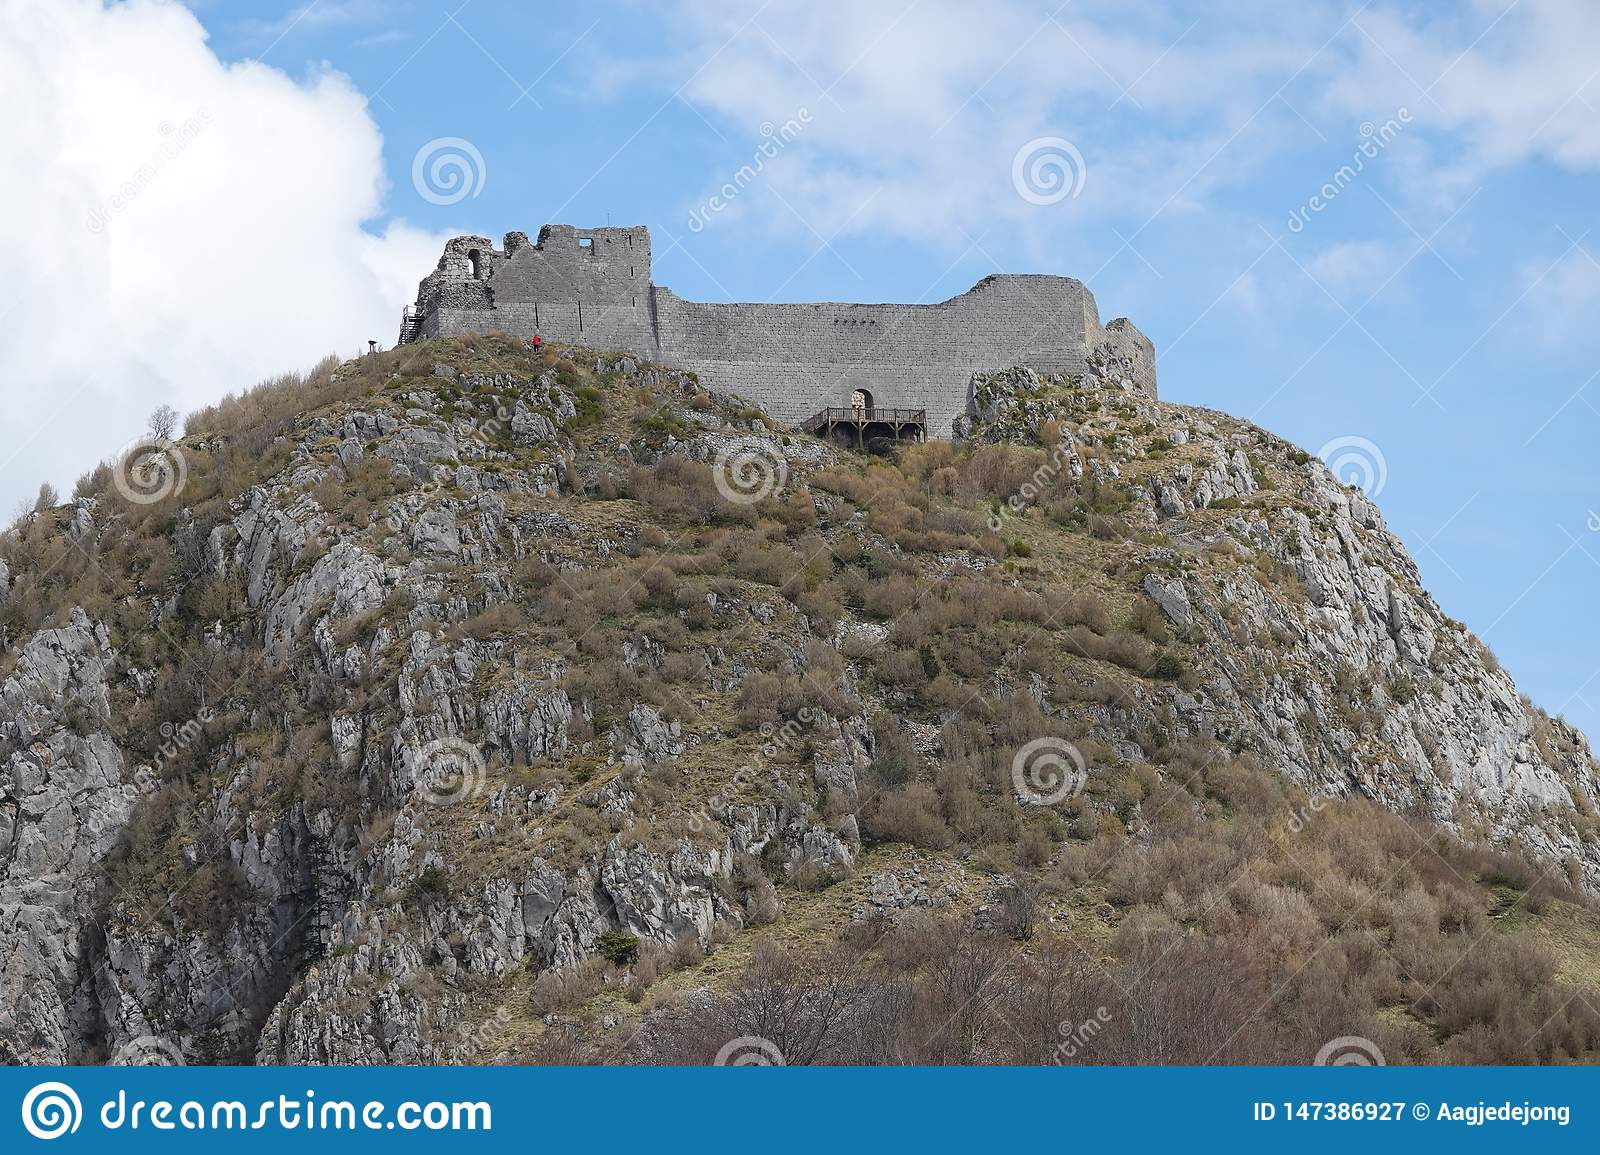 Cathar Castle Of Montsegur In The Pyrenees In France Stock Image ...